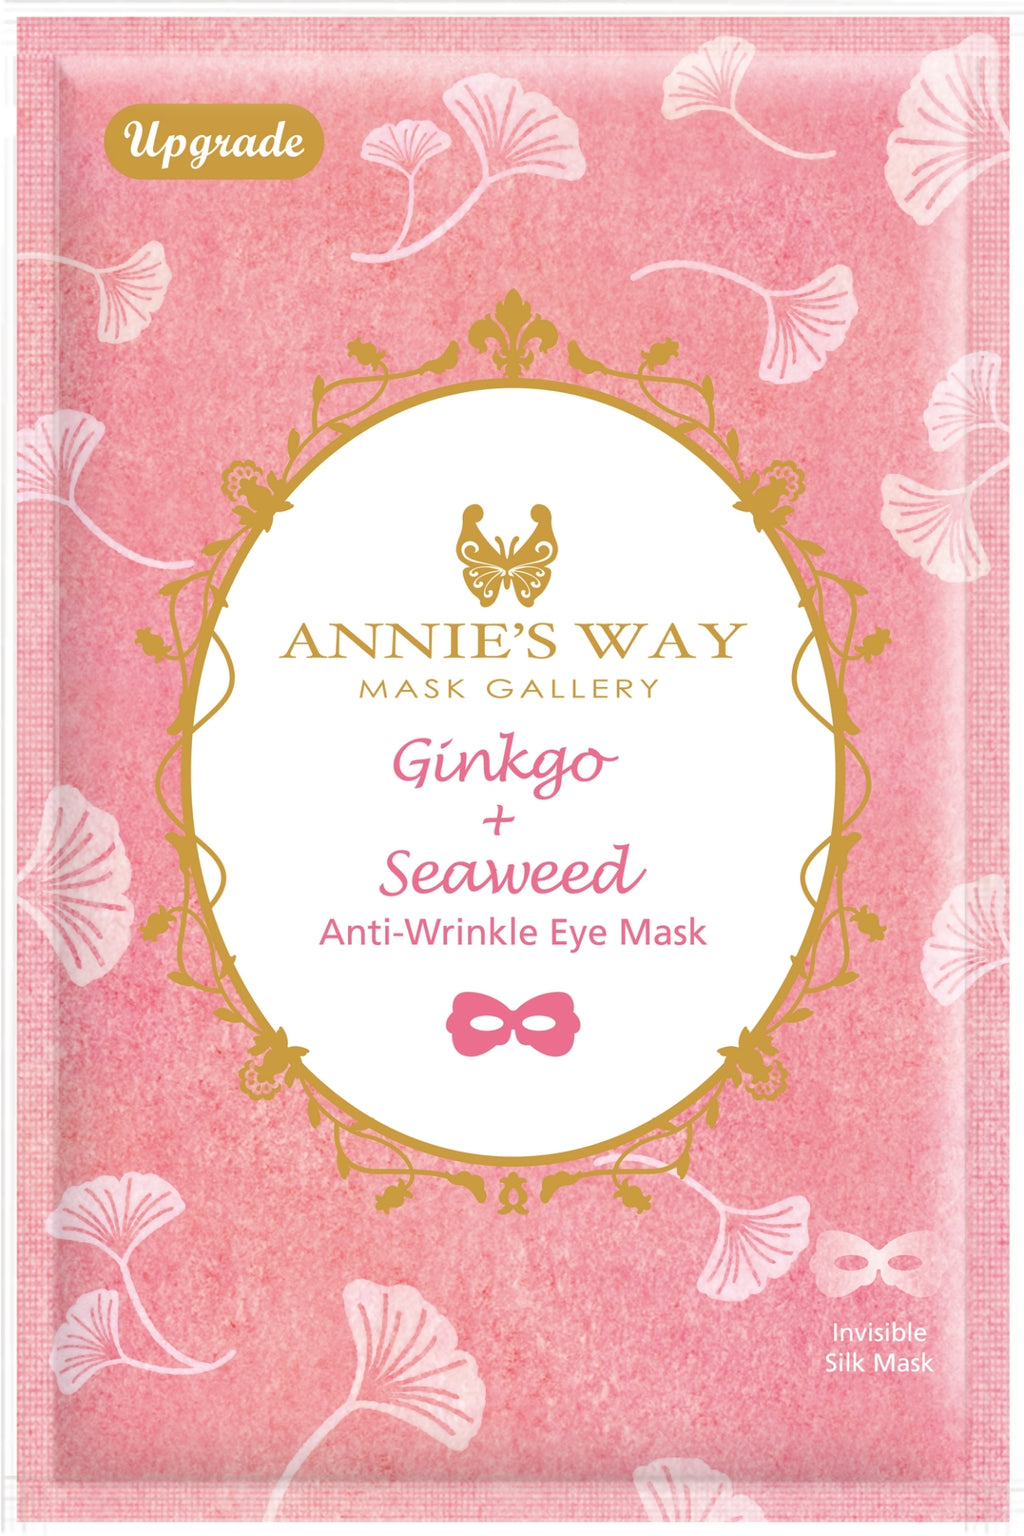 Annie's Way Ginkgo + Seaweed Anti-Wrinkle Eye Mask